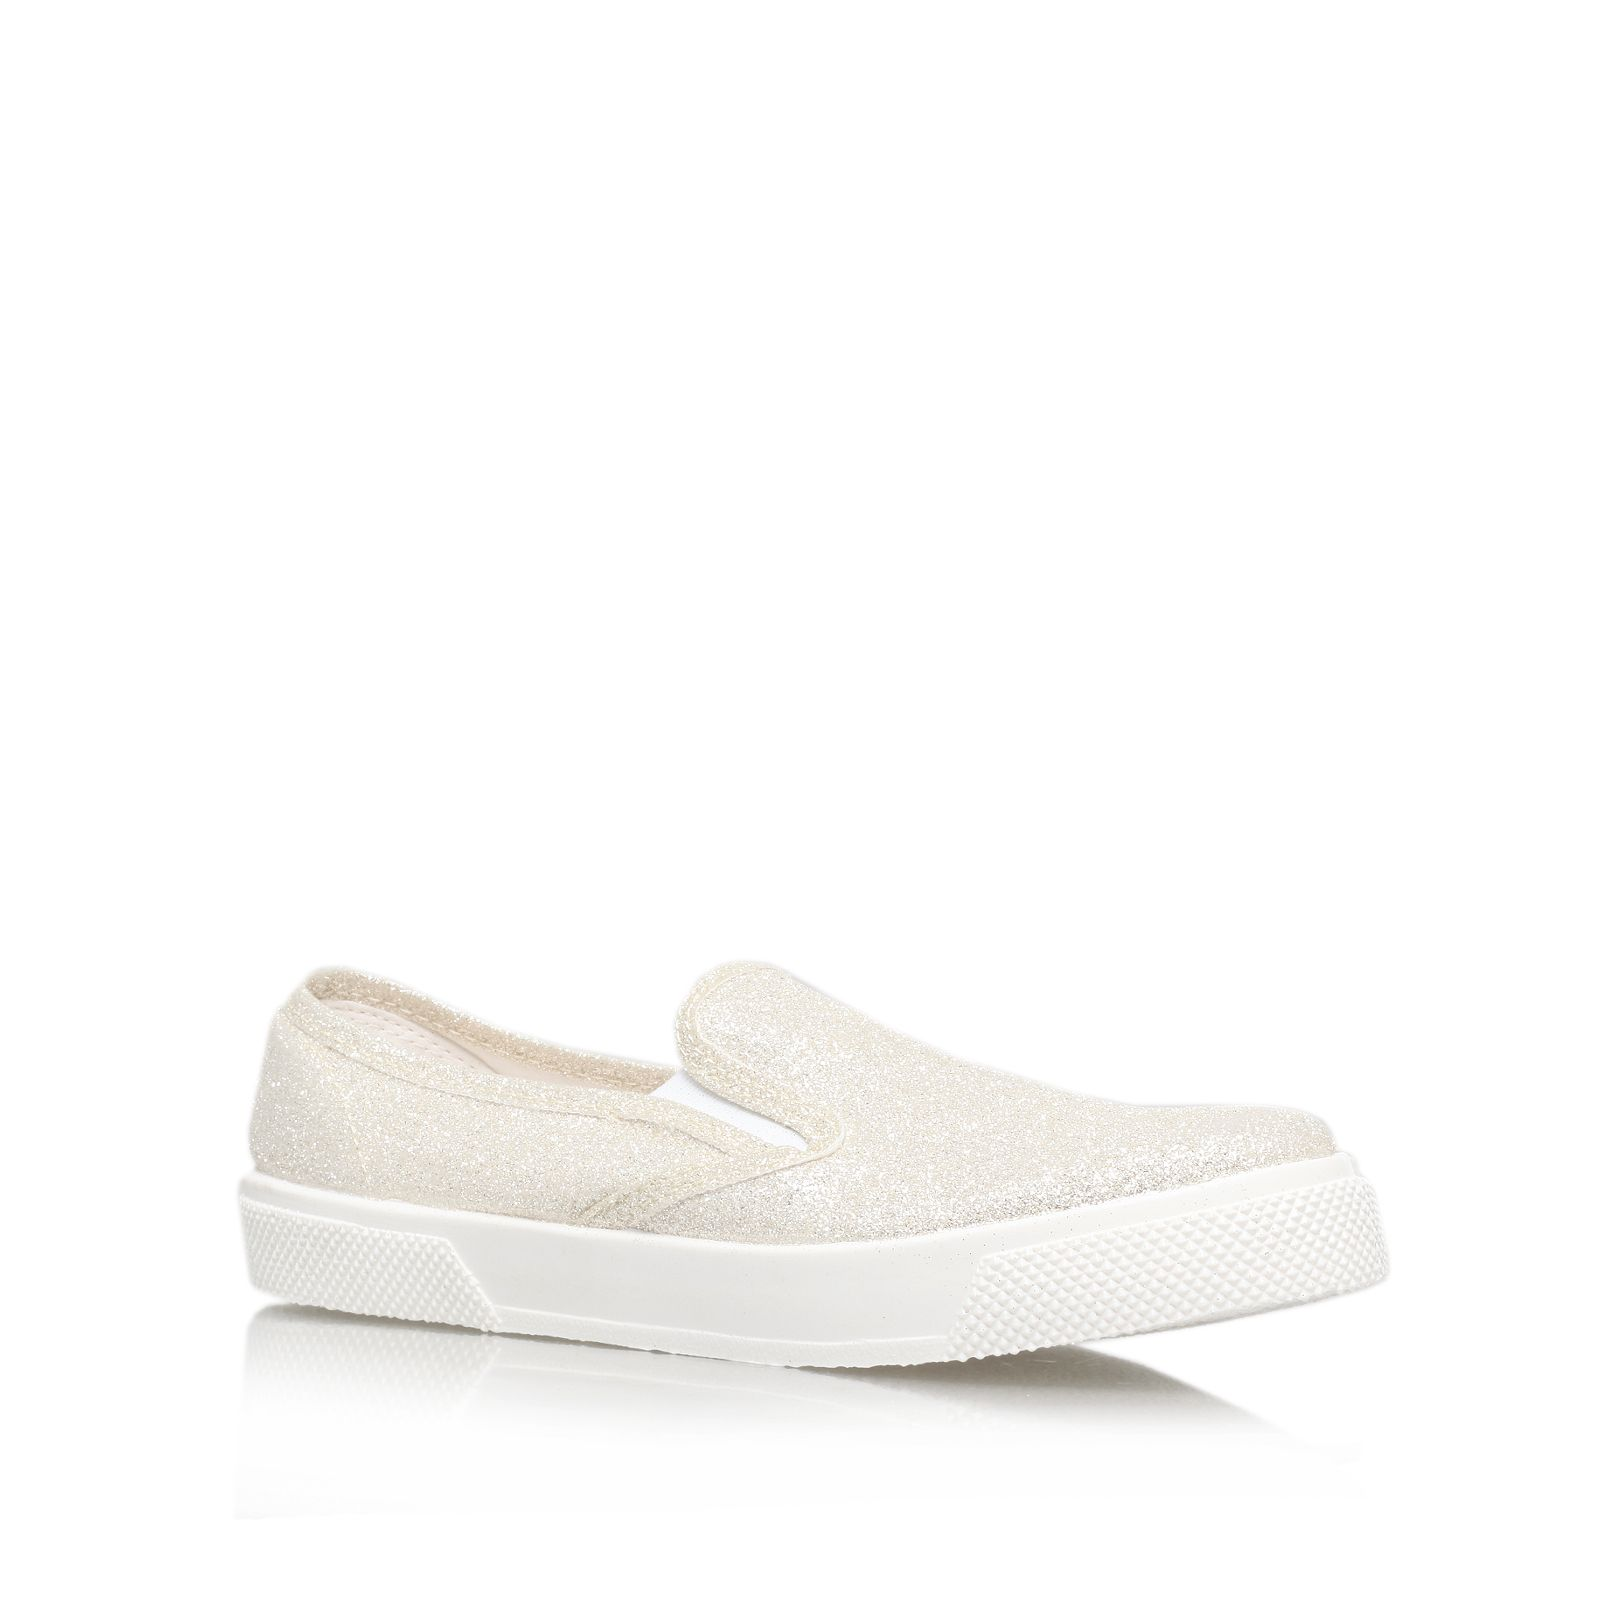 Leo slip on shoes